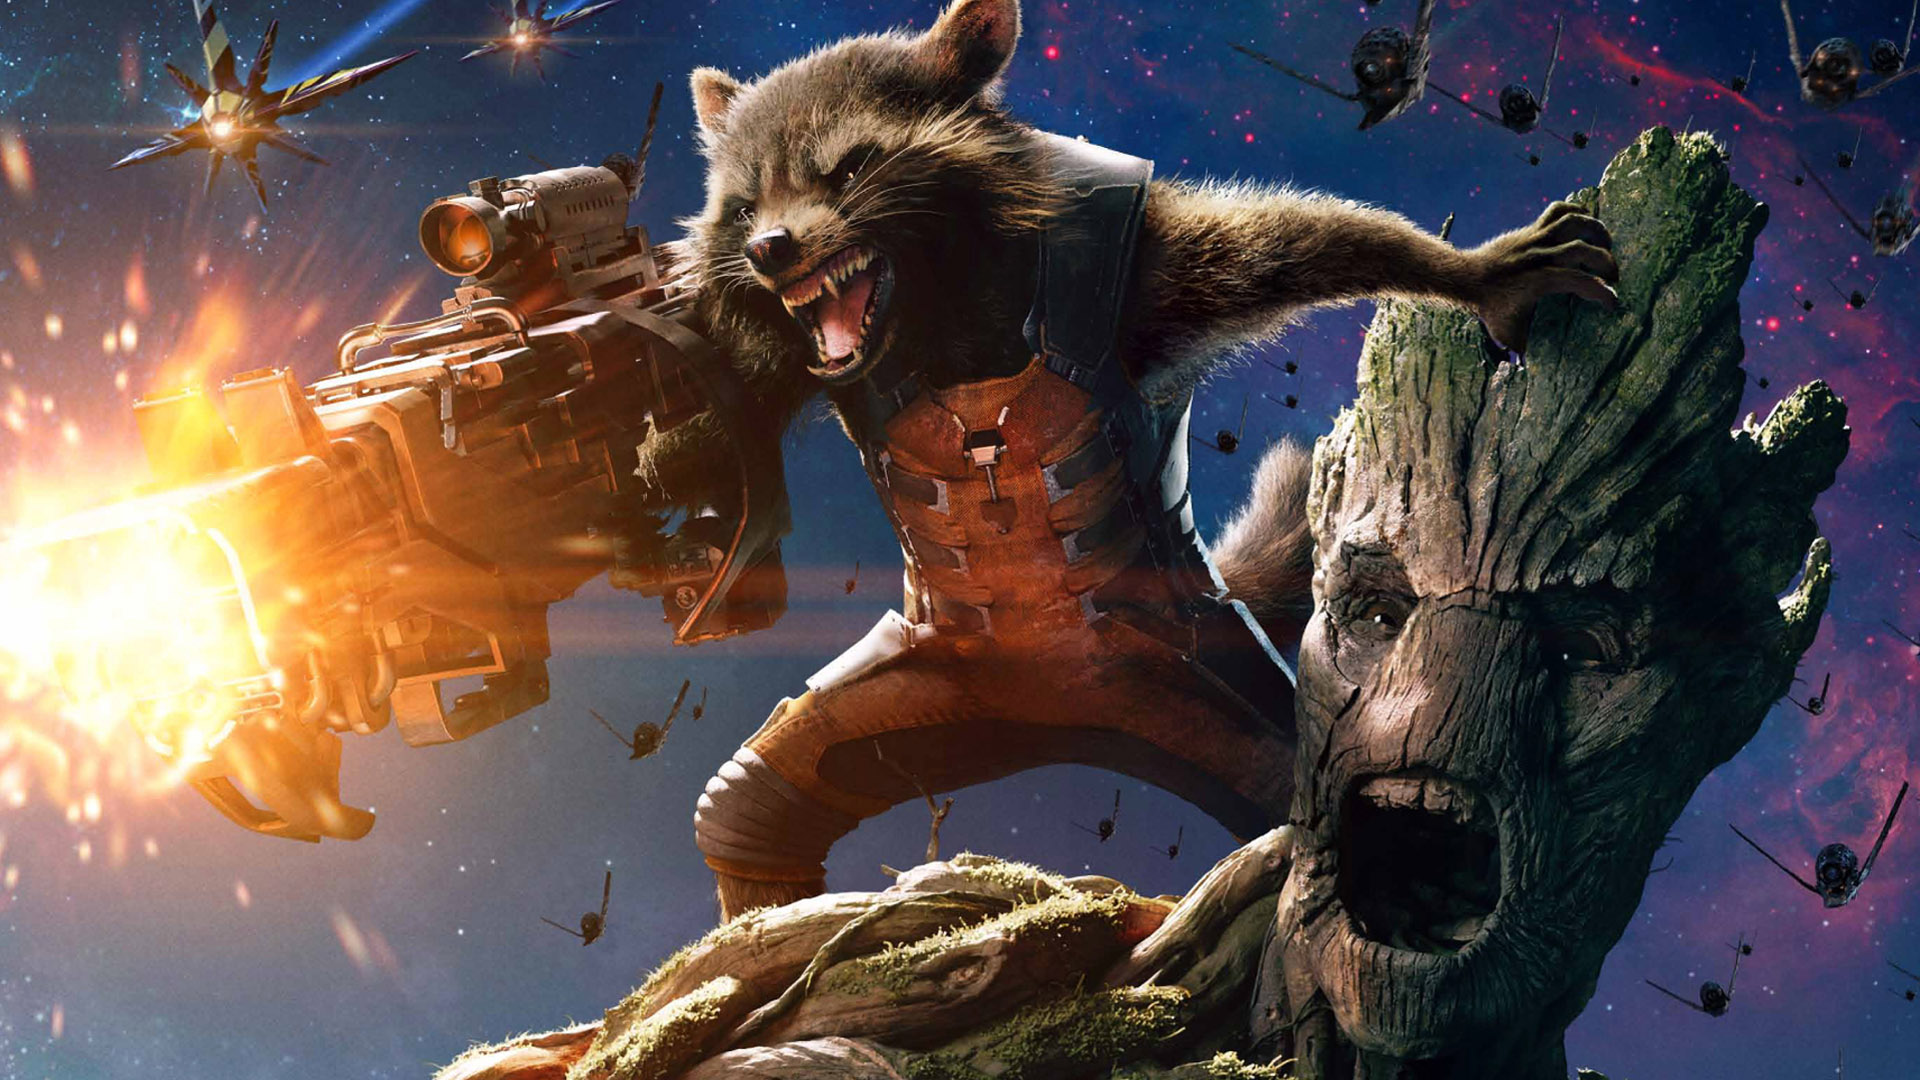 Dan Abnett's  Guardians of the Galaxy: Rocket Raccoon & Groot Steal the Galaxy is a flarking good time!